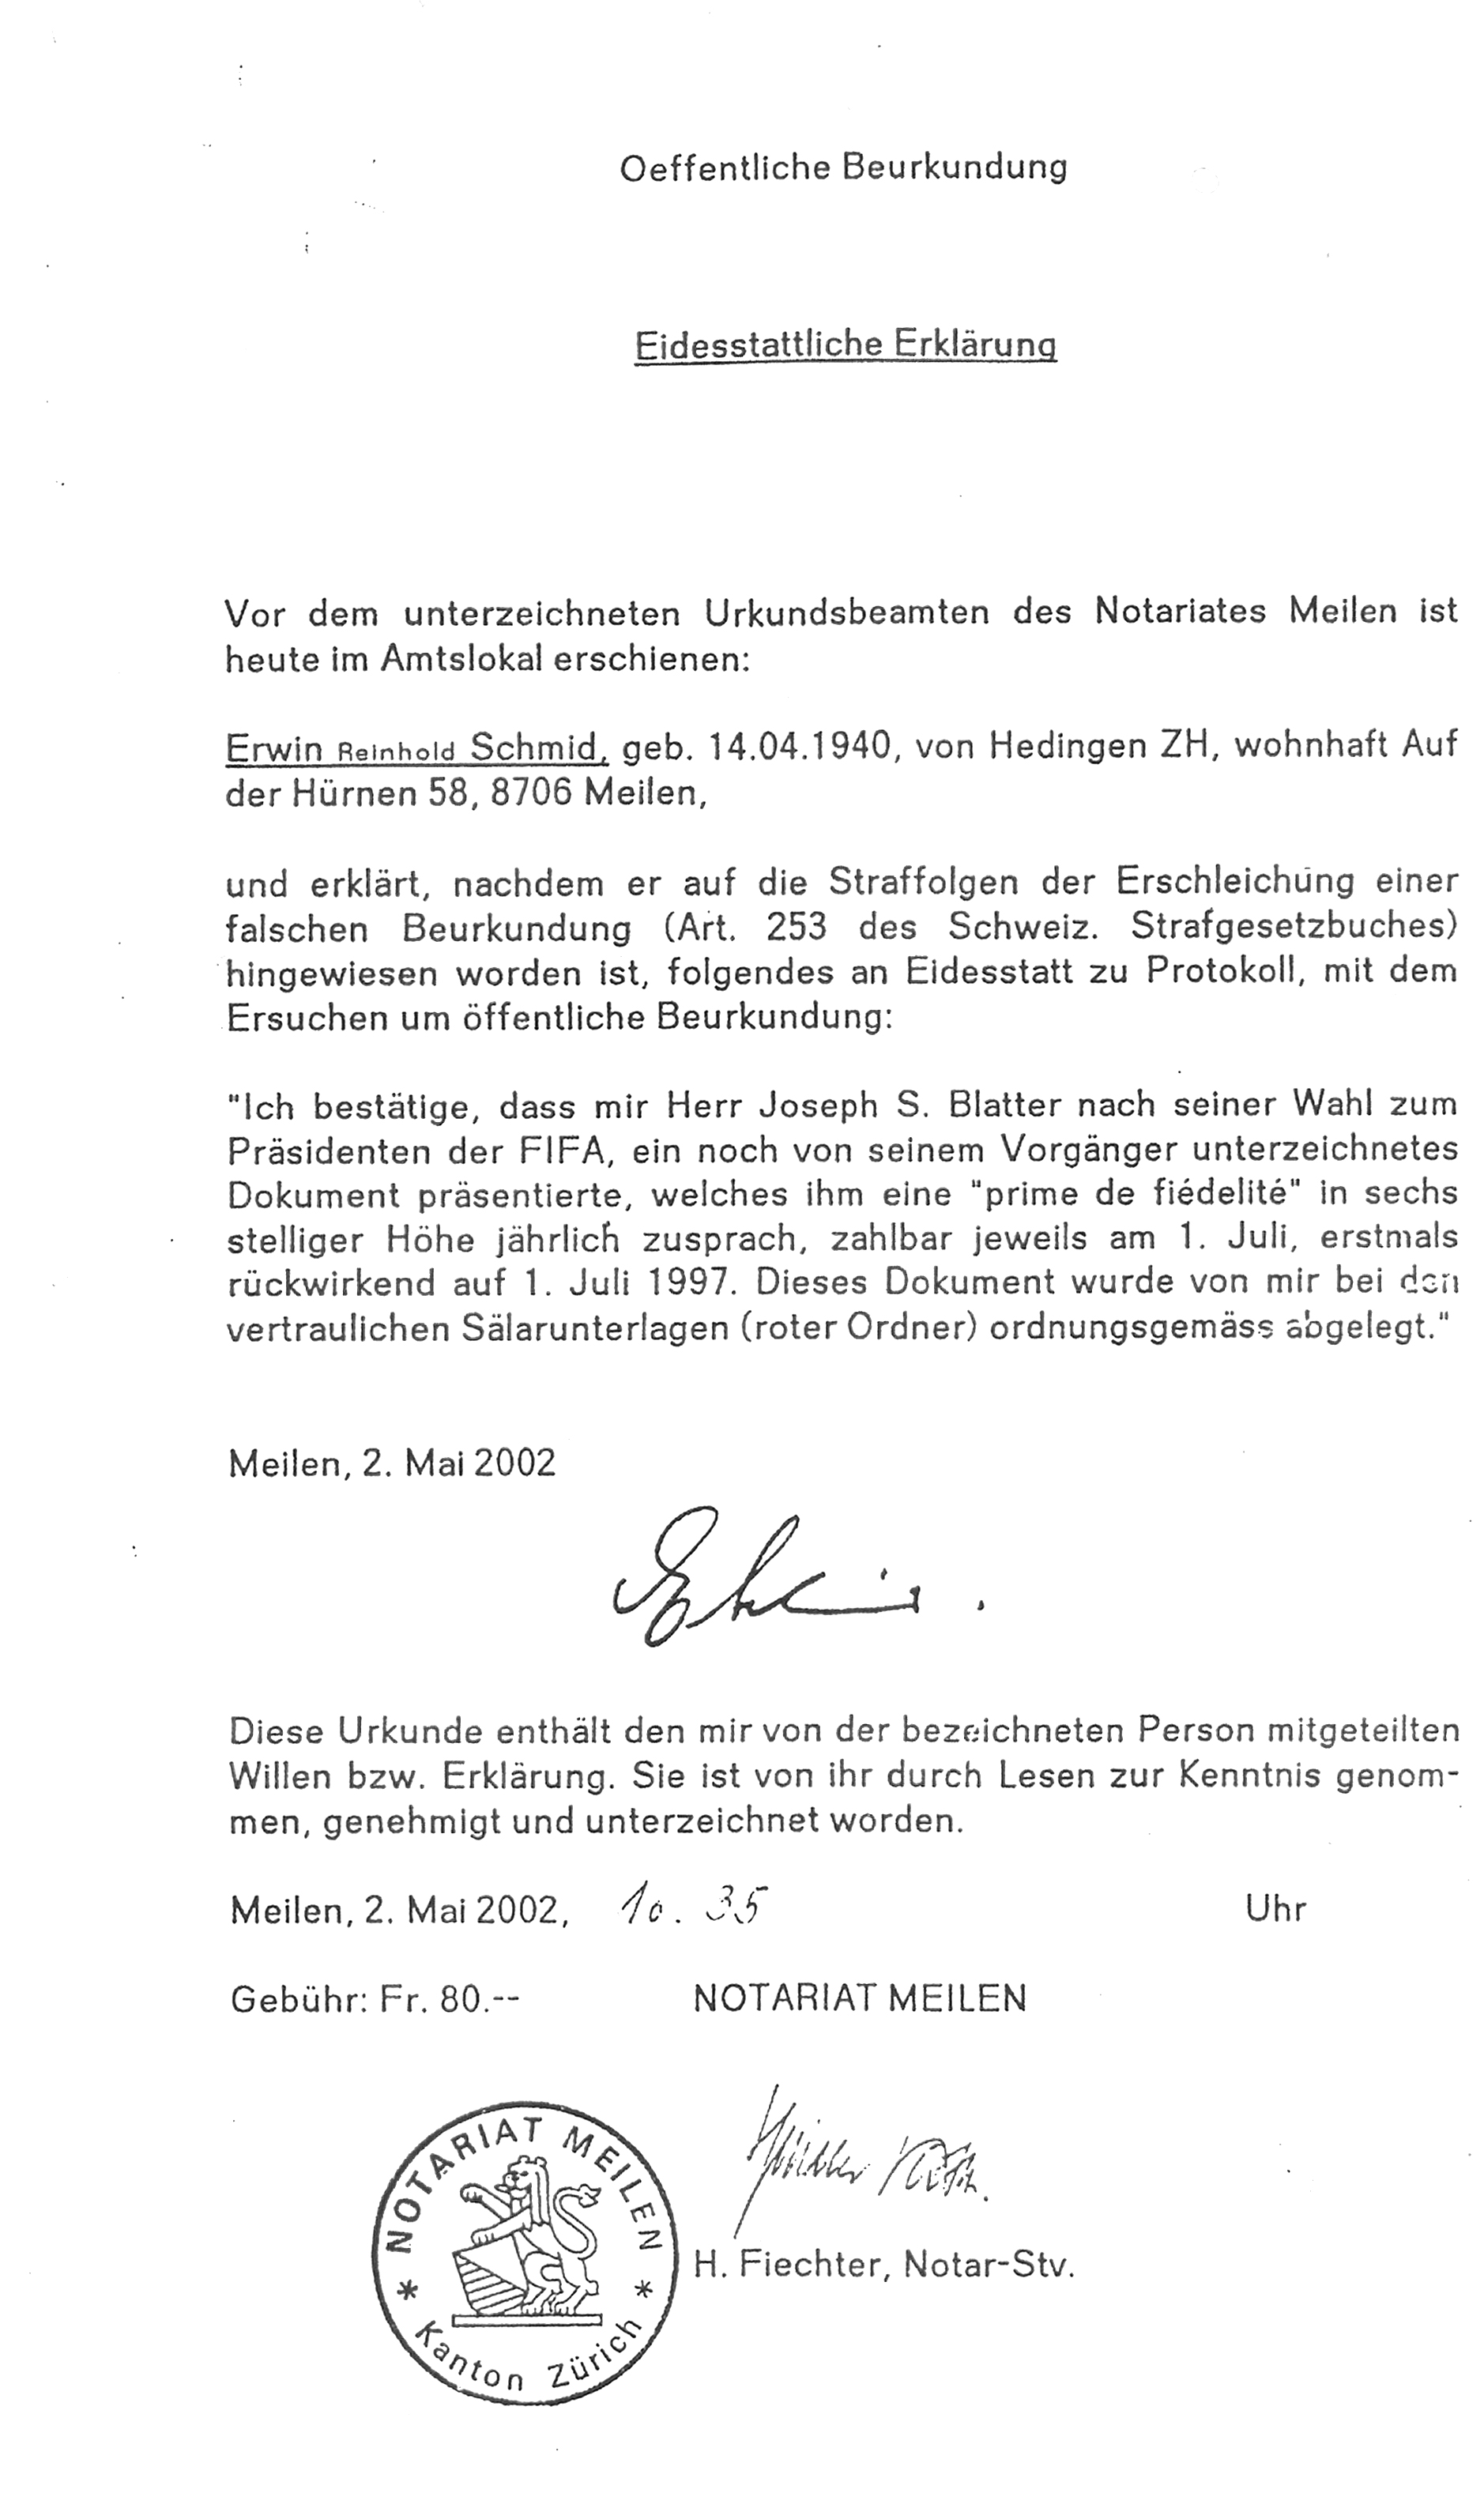 The legal document that proves Blatter a liar.